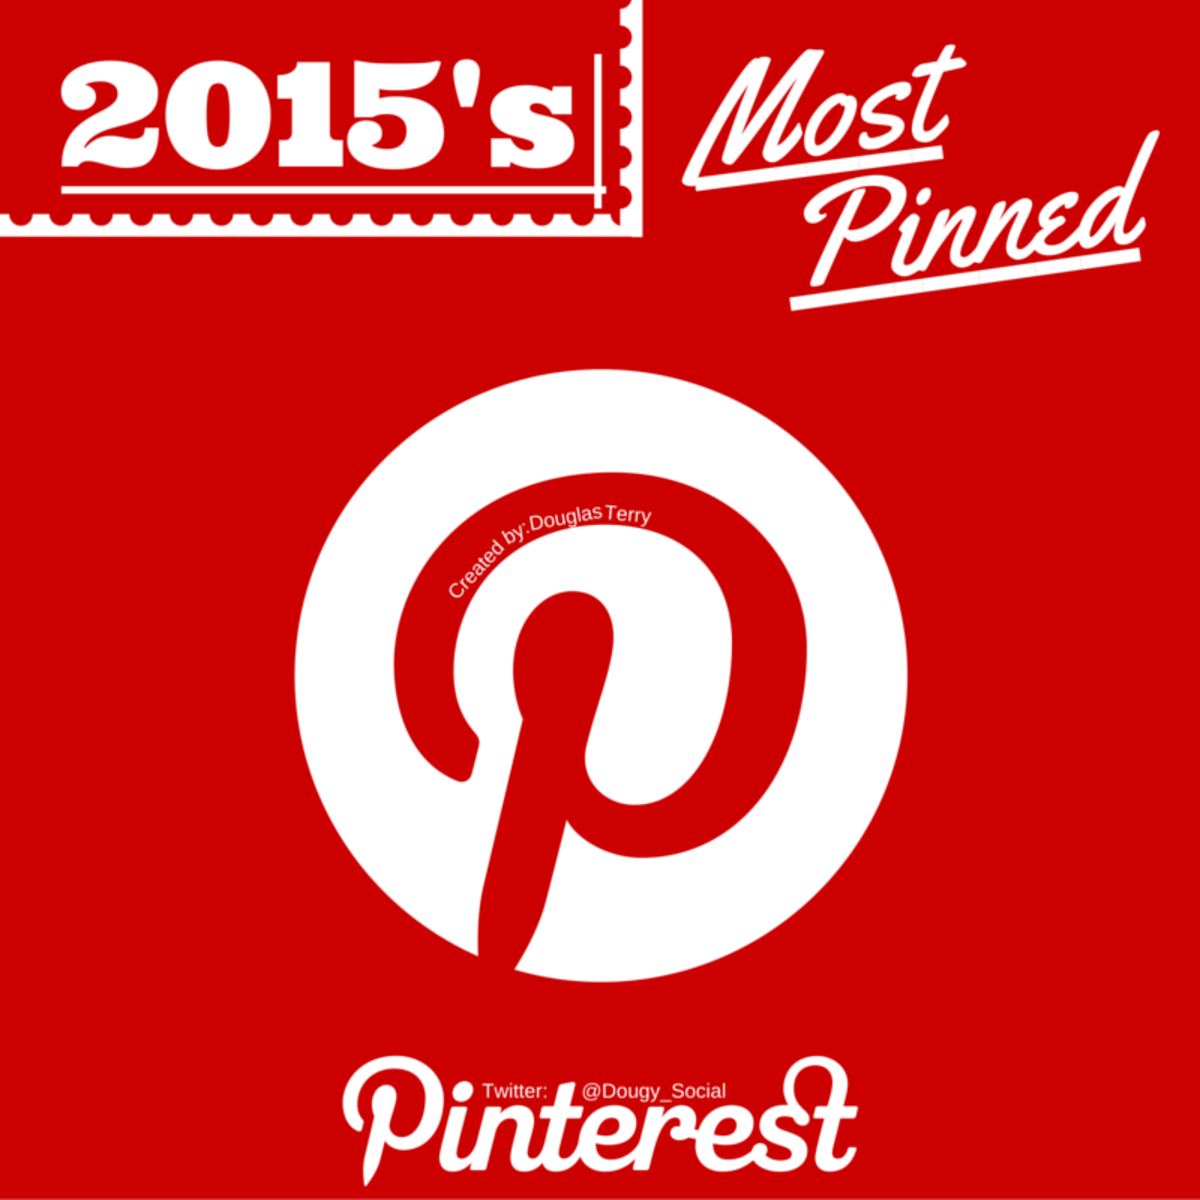 Headline for Pinterest| TOP Pinned Products of 2015